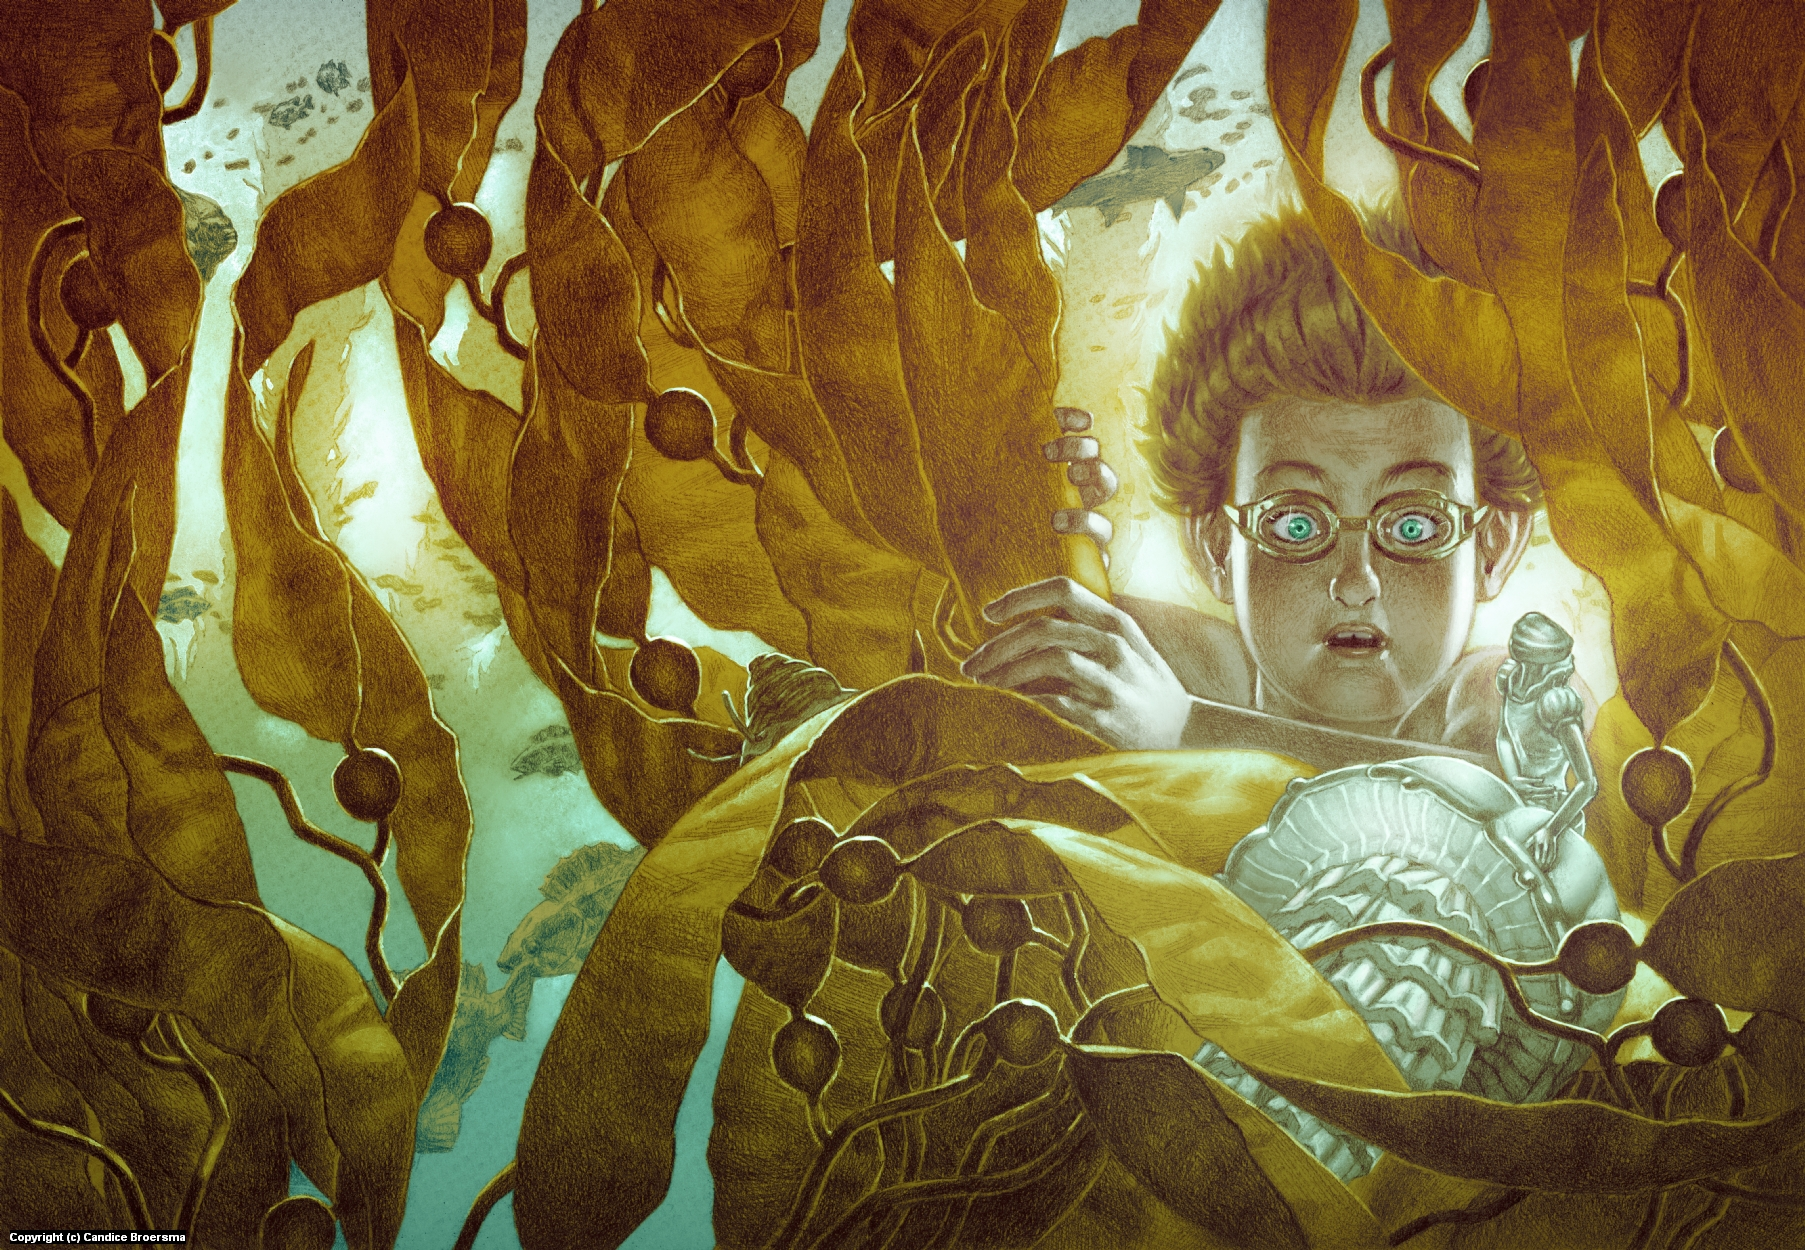 In the Kelp Forest Artwork by Candice Broersma